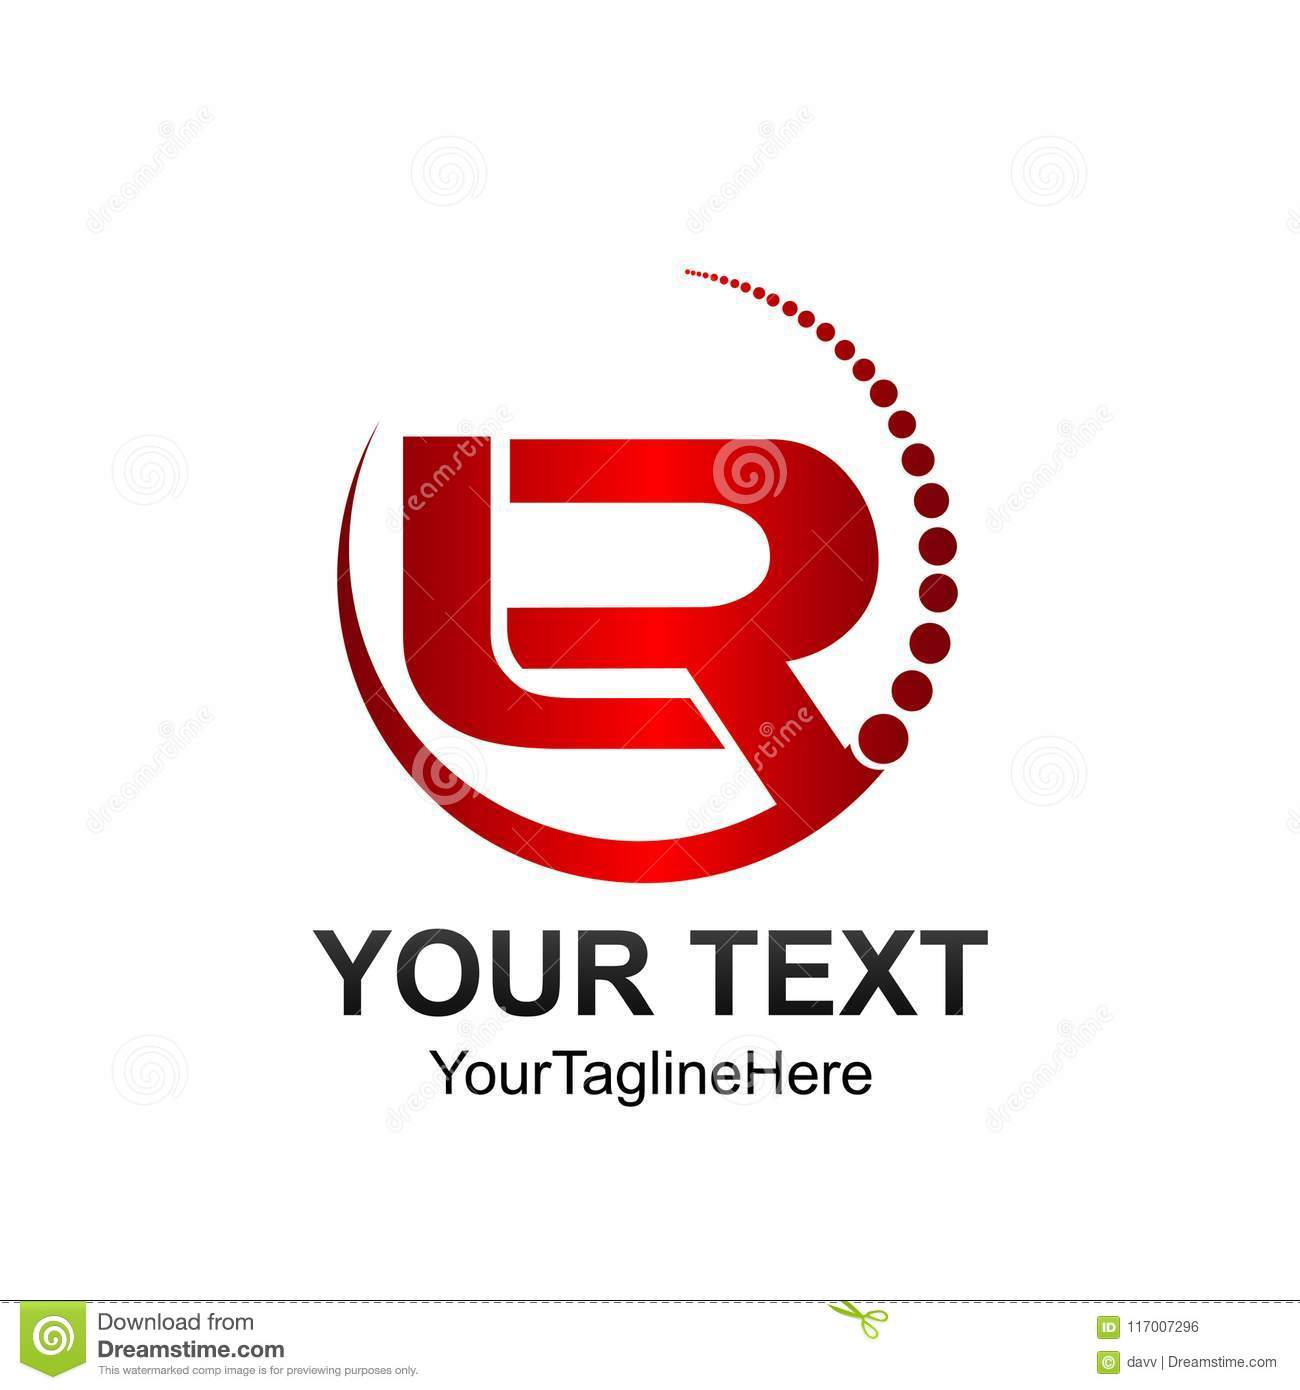 Initial letter LR logo template colored red circle swoosh design